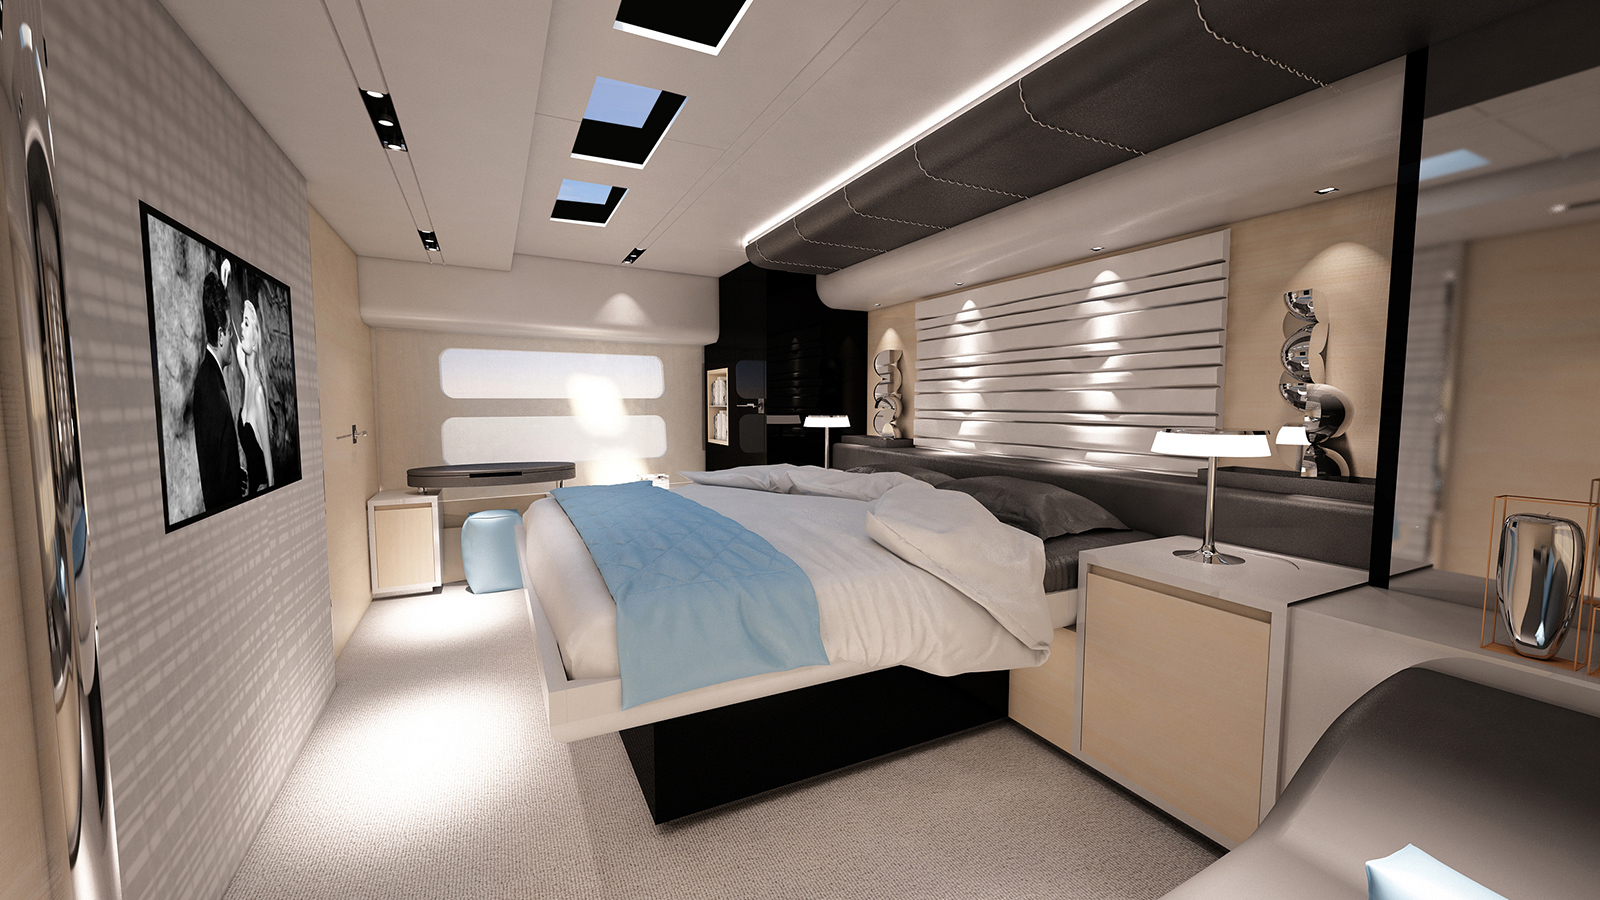 the-owners-cabin-of-the-canados-808-maximus